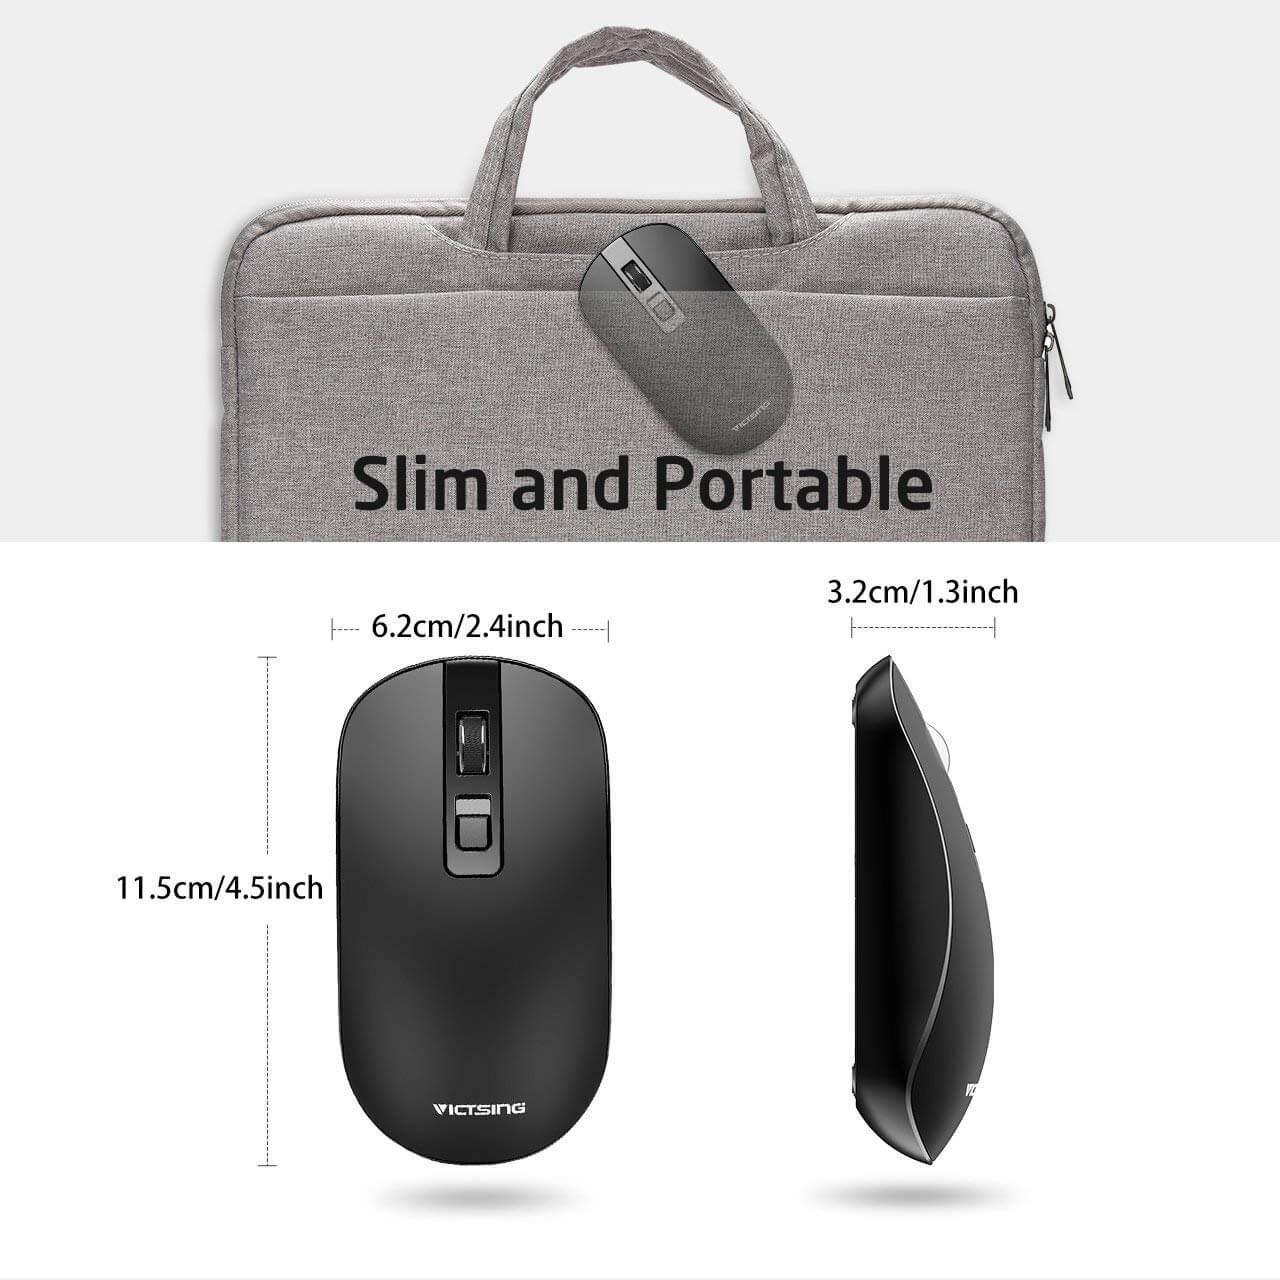 VicTsing 4-Button Slim Silent Wireless Mouse